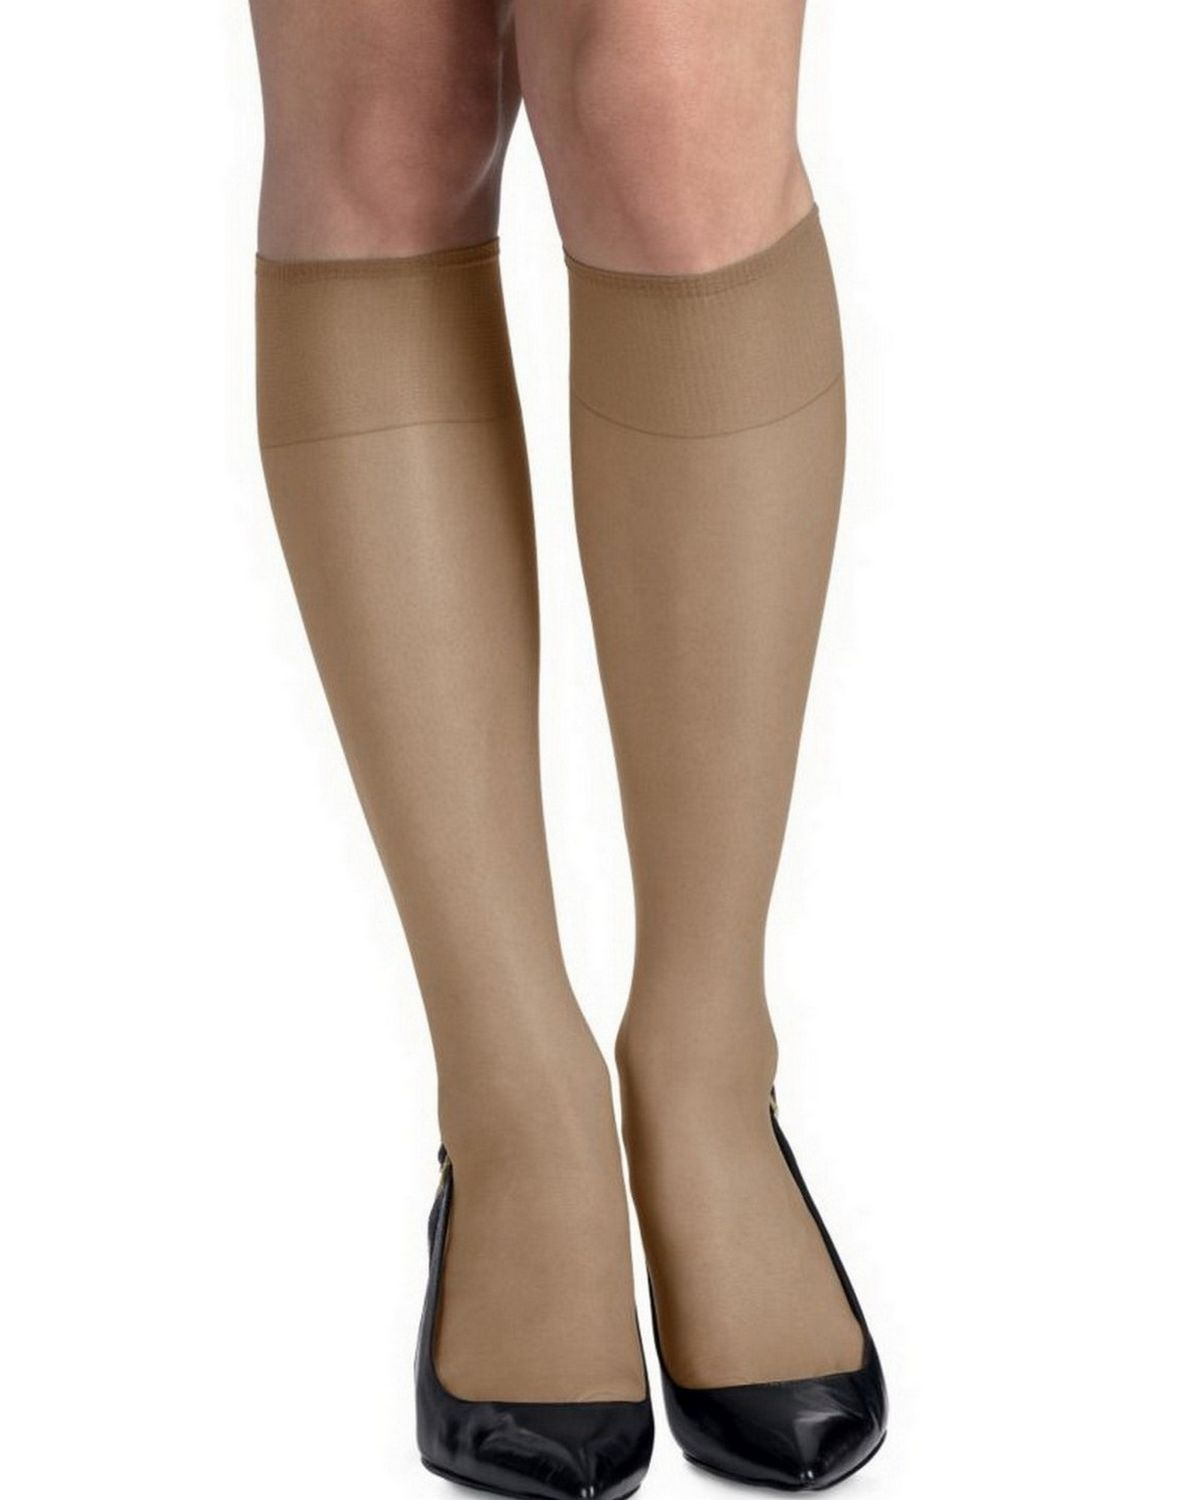 Hanes 775 Women's Silk Reflections Silky Sheer Knee Highs Reinforced Toe 2-Pack - Barely There - One Size #silk